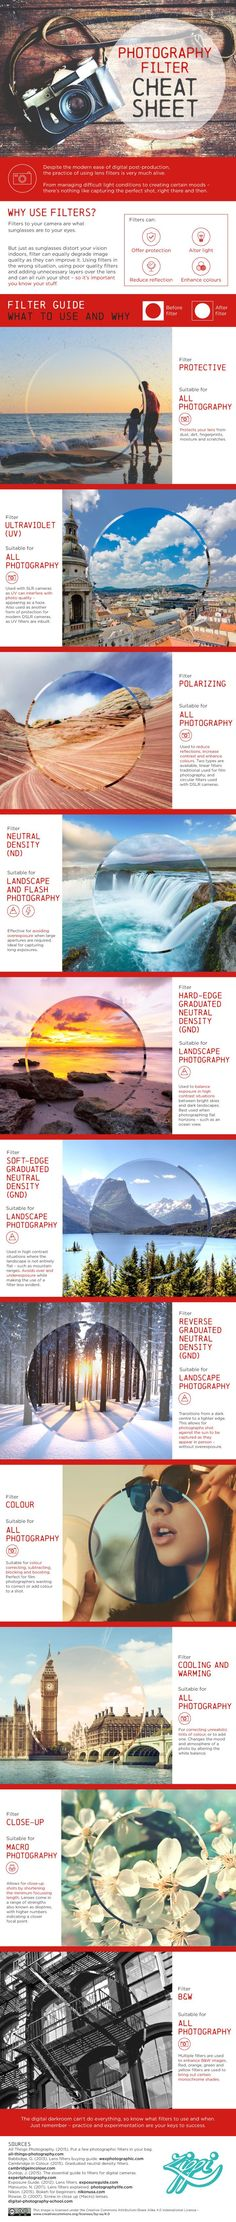 Use this handy photography filter cheat sheet to help you understand filters and…